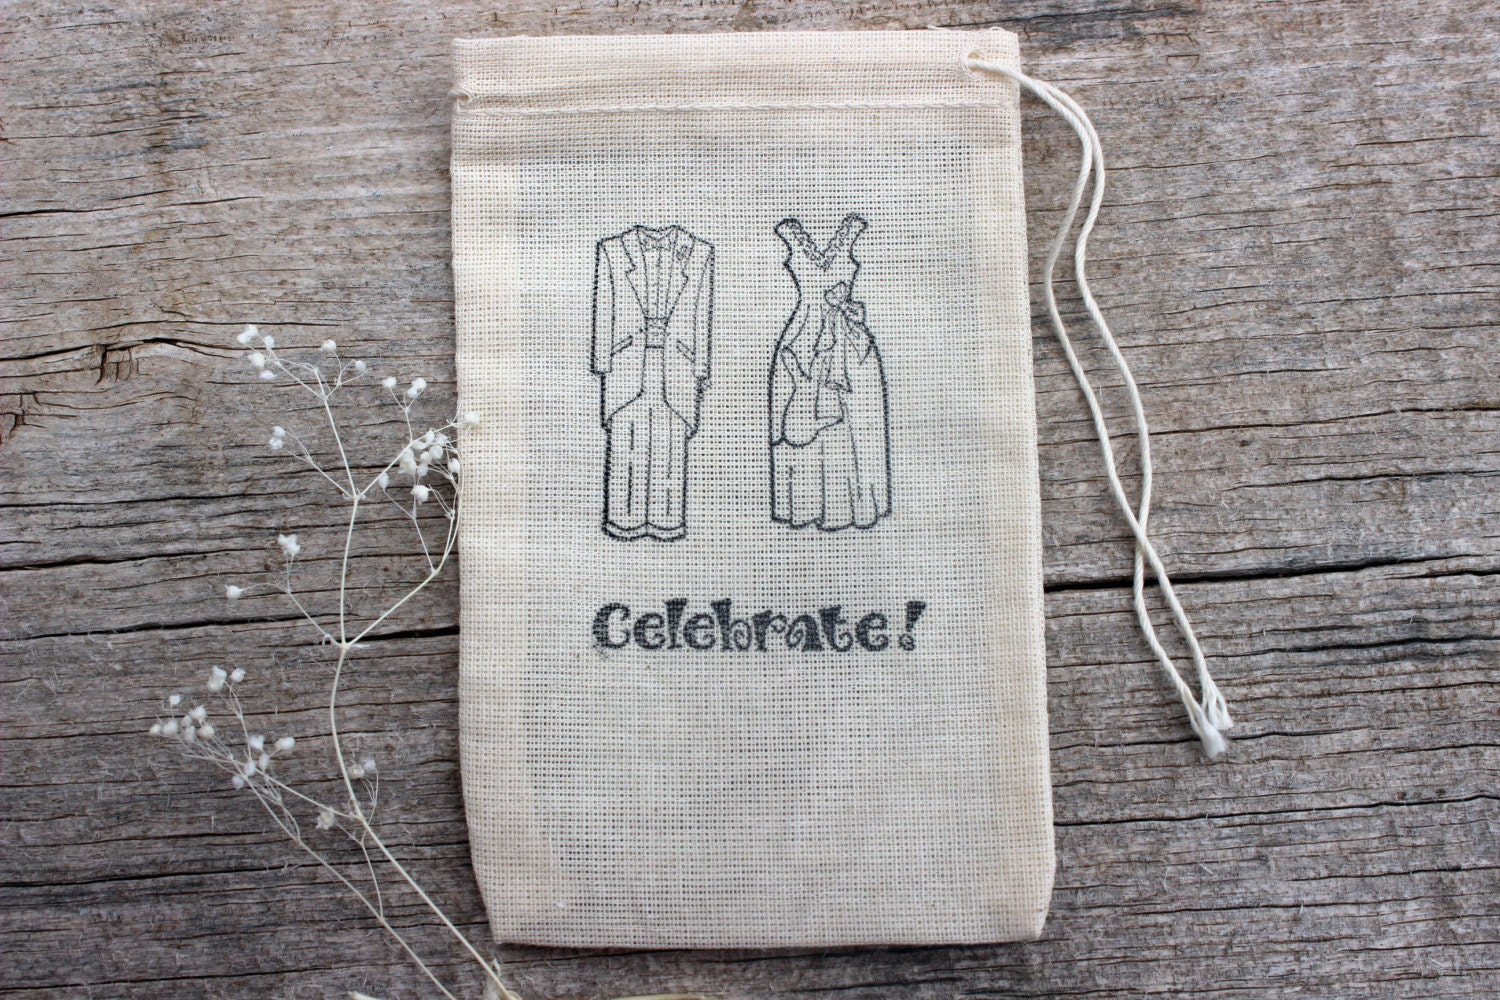 Wedding Gift Bag For Bride And Groom : Wedding Favor Candy Bags Bride Groom by MountainUrsusDesigns